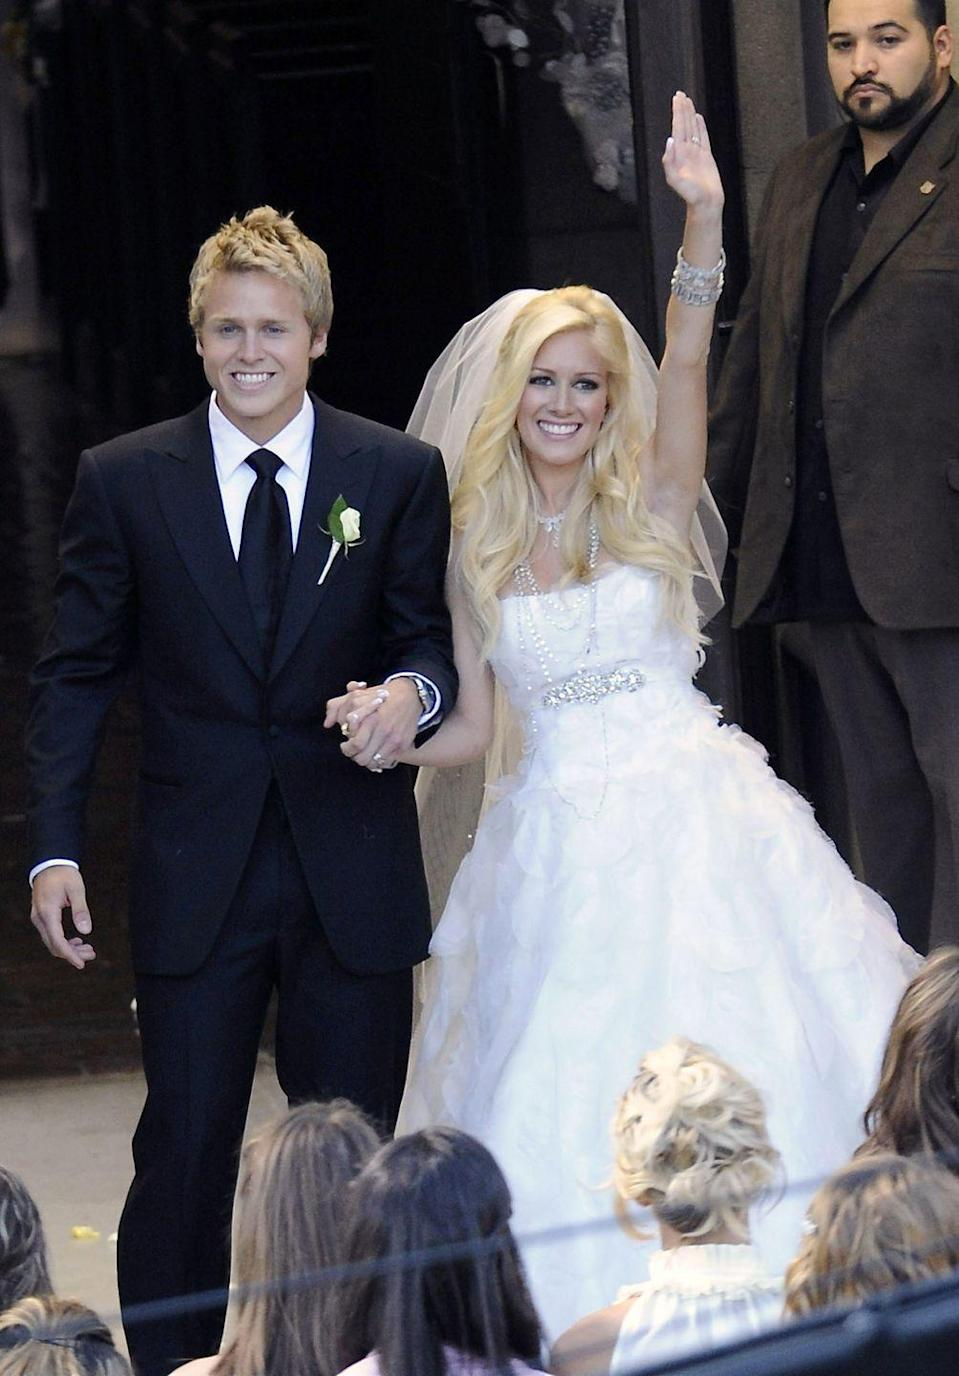 "<p>In a moment that would be viewed by millions on reality TV, Heidi Montag and Spencer Pratt exchanged their vows in front of a dramatic crowd on MTV's <em>The Hills</em>. Leading up to the moment, there were rumors that Heidi would design her own gown, but for the her big day she wore a <a href=""https://www.glamour.com/story/heidi-montags-wedding-dress-pa"" rel=""nofollow noopener"" target=""_blank"" data-ylk=""slk:Monique Lhuillier"" class=""link rapid-noclick-resp"">Monique Lhuillier</a> dress.</p>"